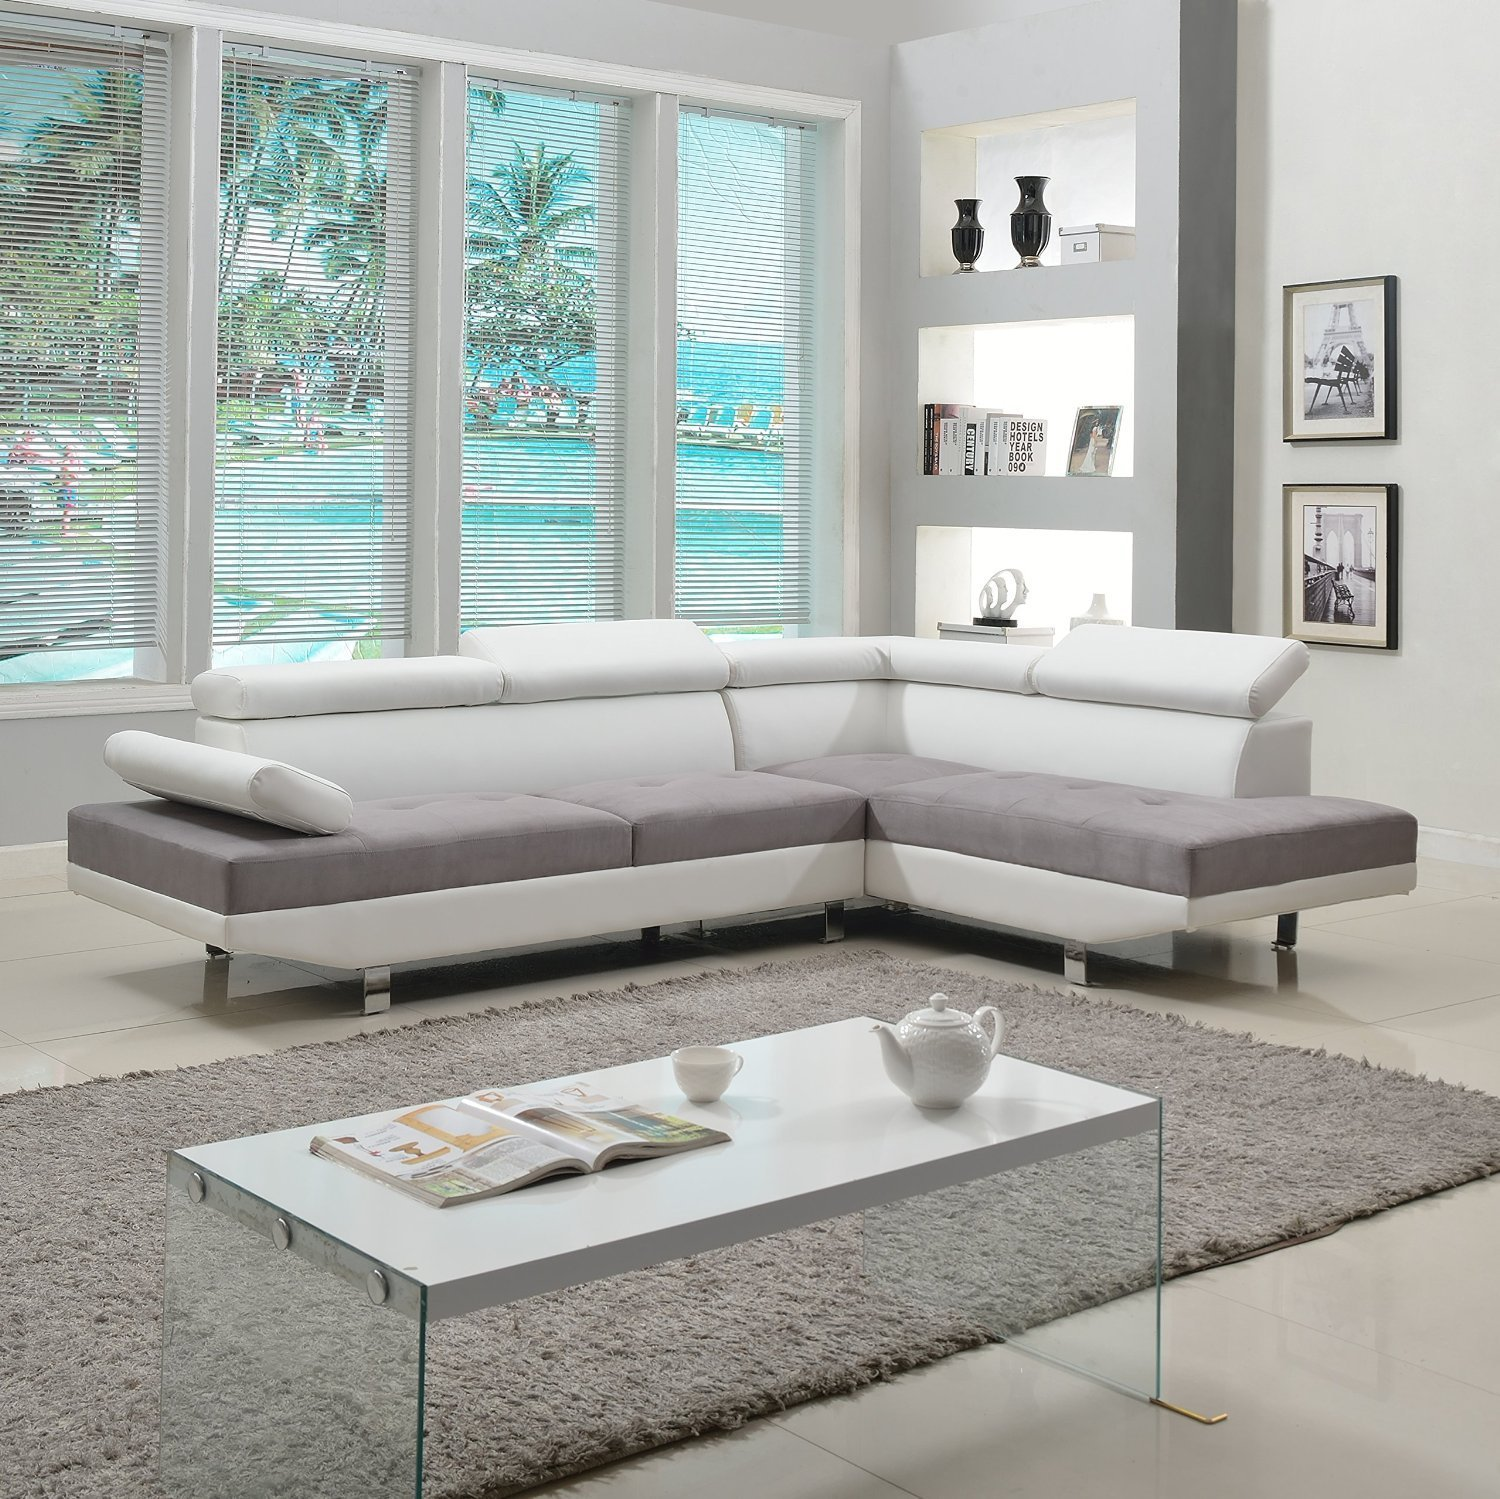 One Furniture: Modern Living Room Furniture Review